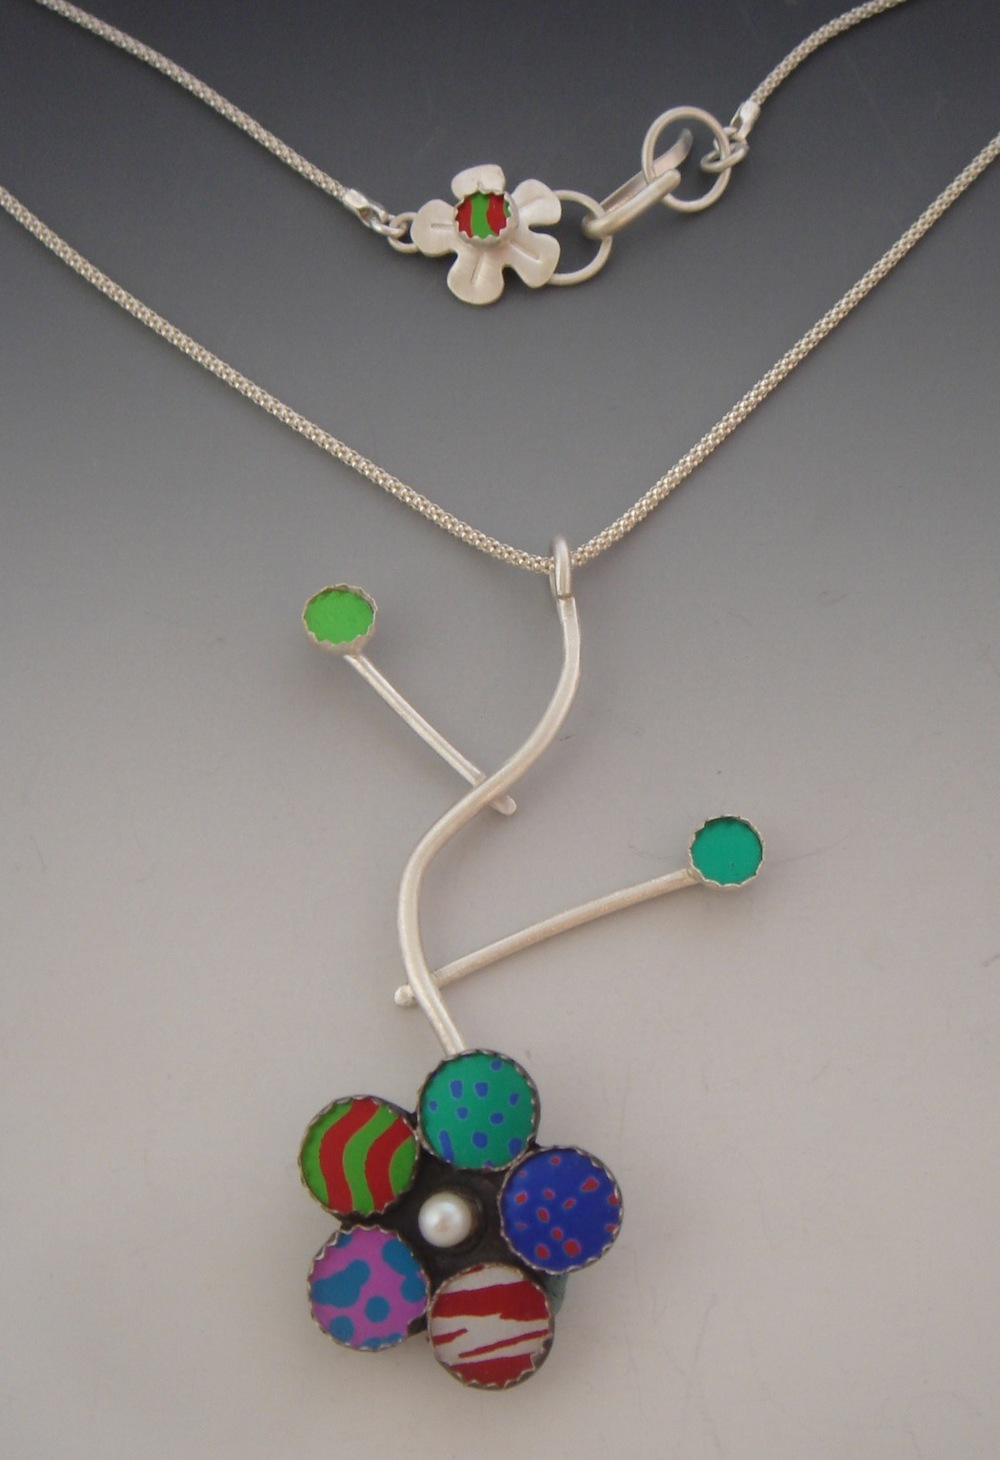 My Garden Has Many Colors Anodized Aluminum, Sterling Silver, Freshwater Pearl  $425